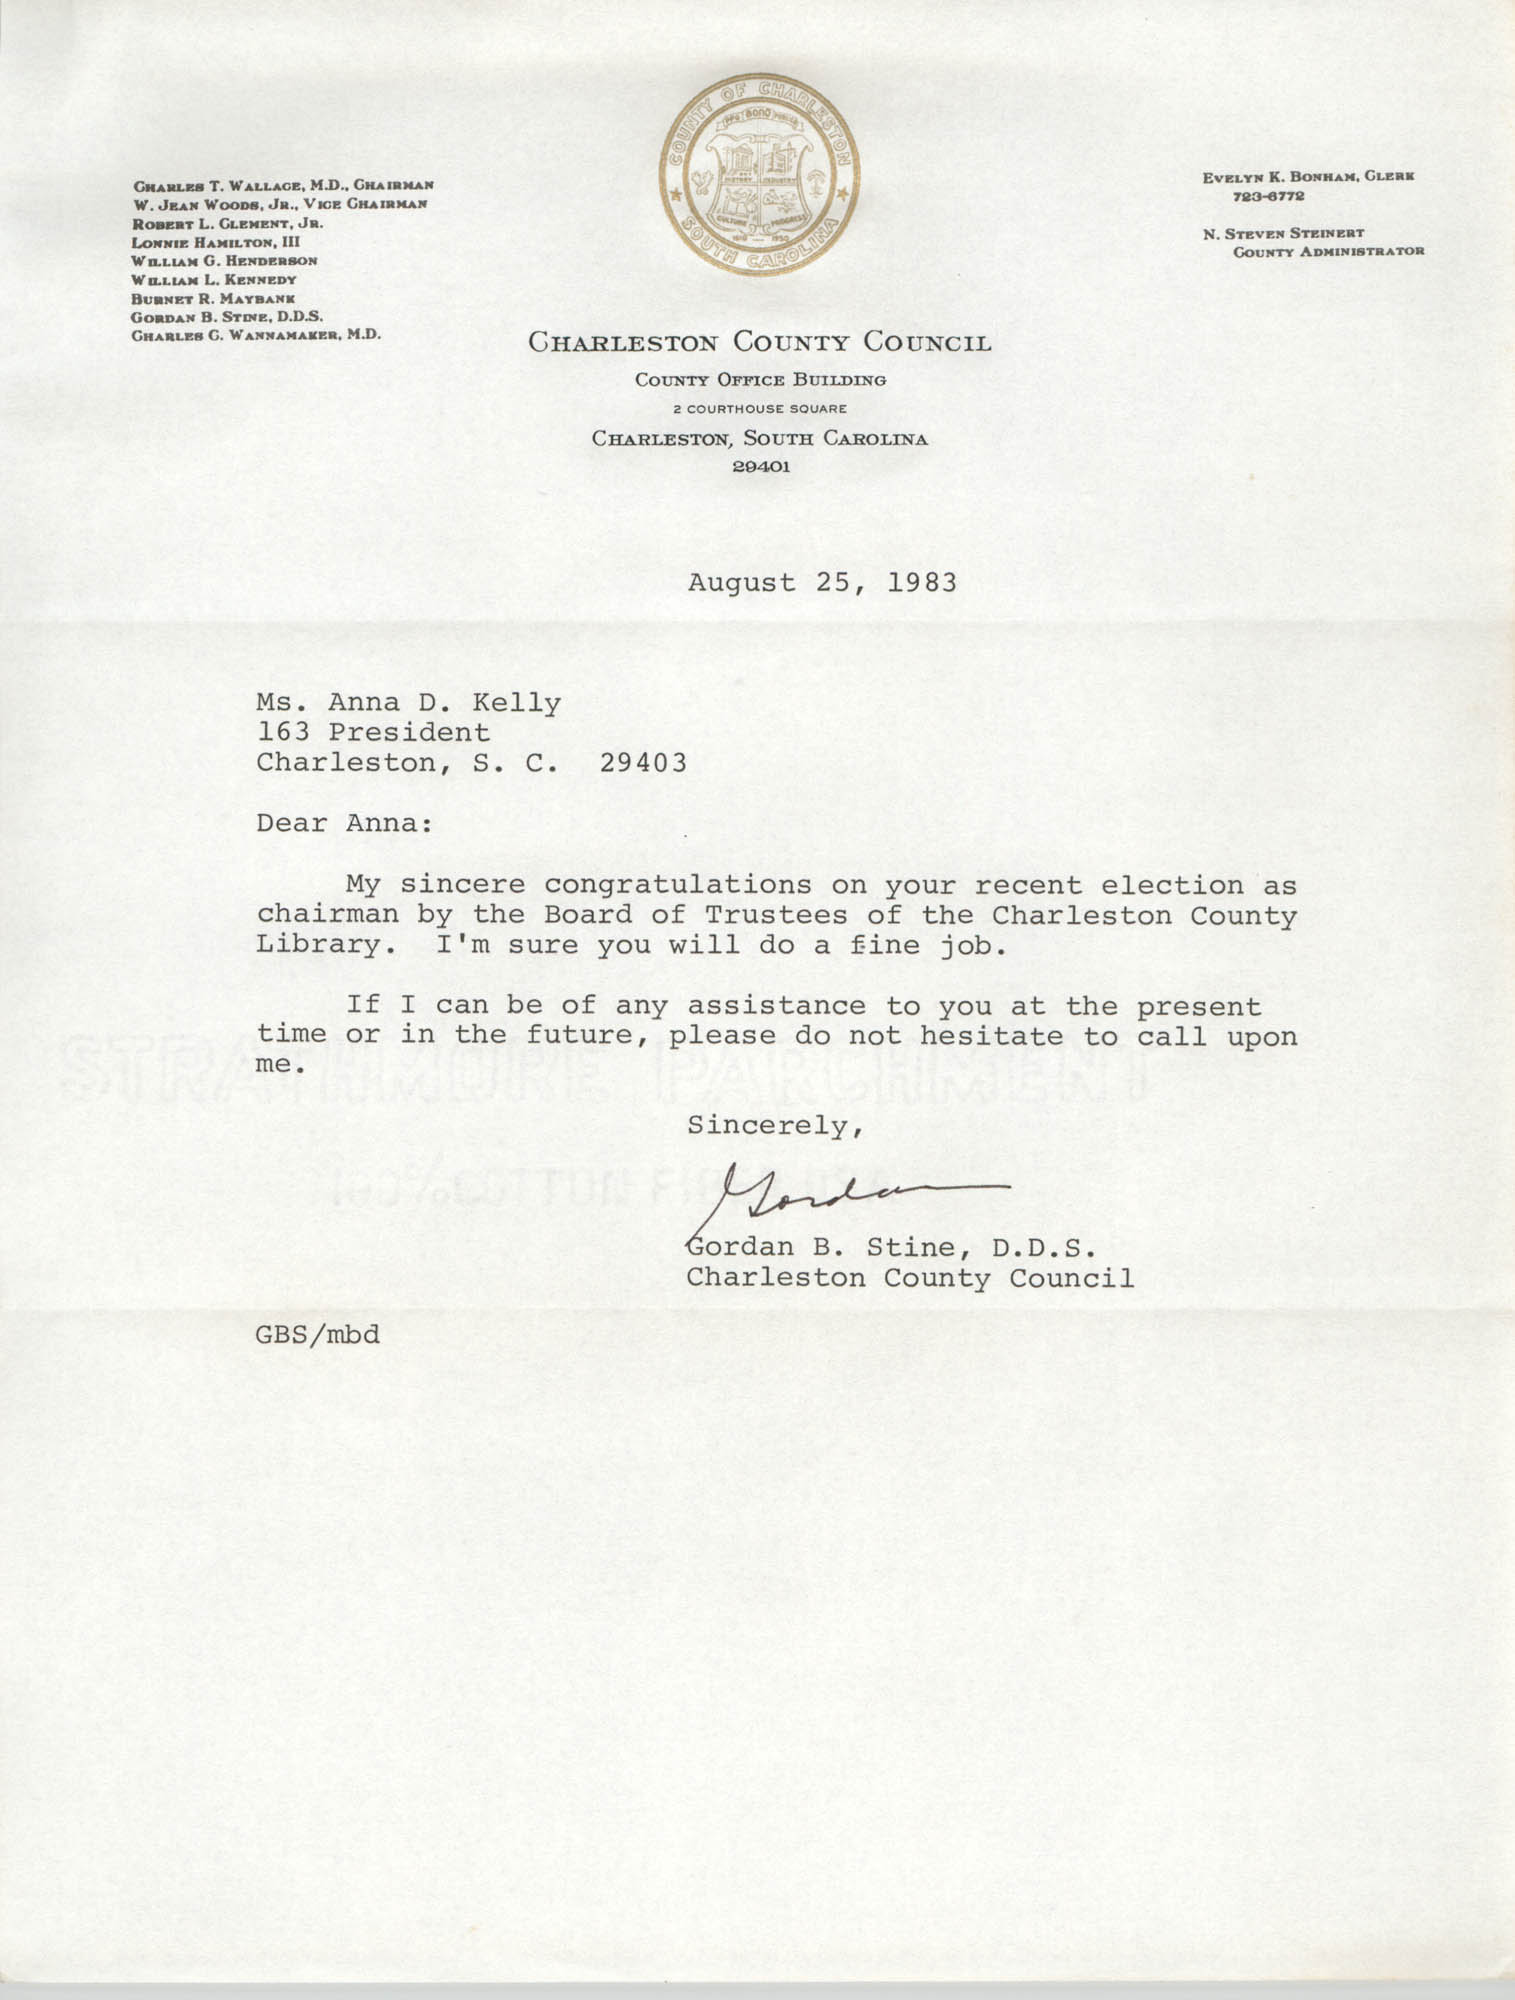 Letter from Gordan B. Stine to Anna D. Kelly, August 25, 1983